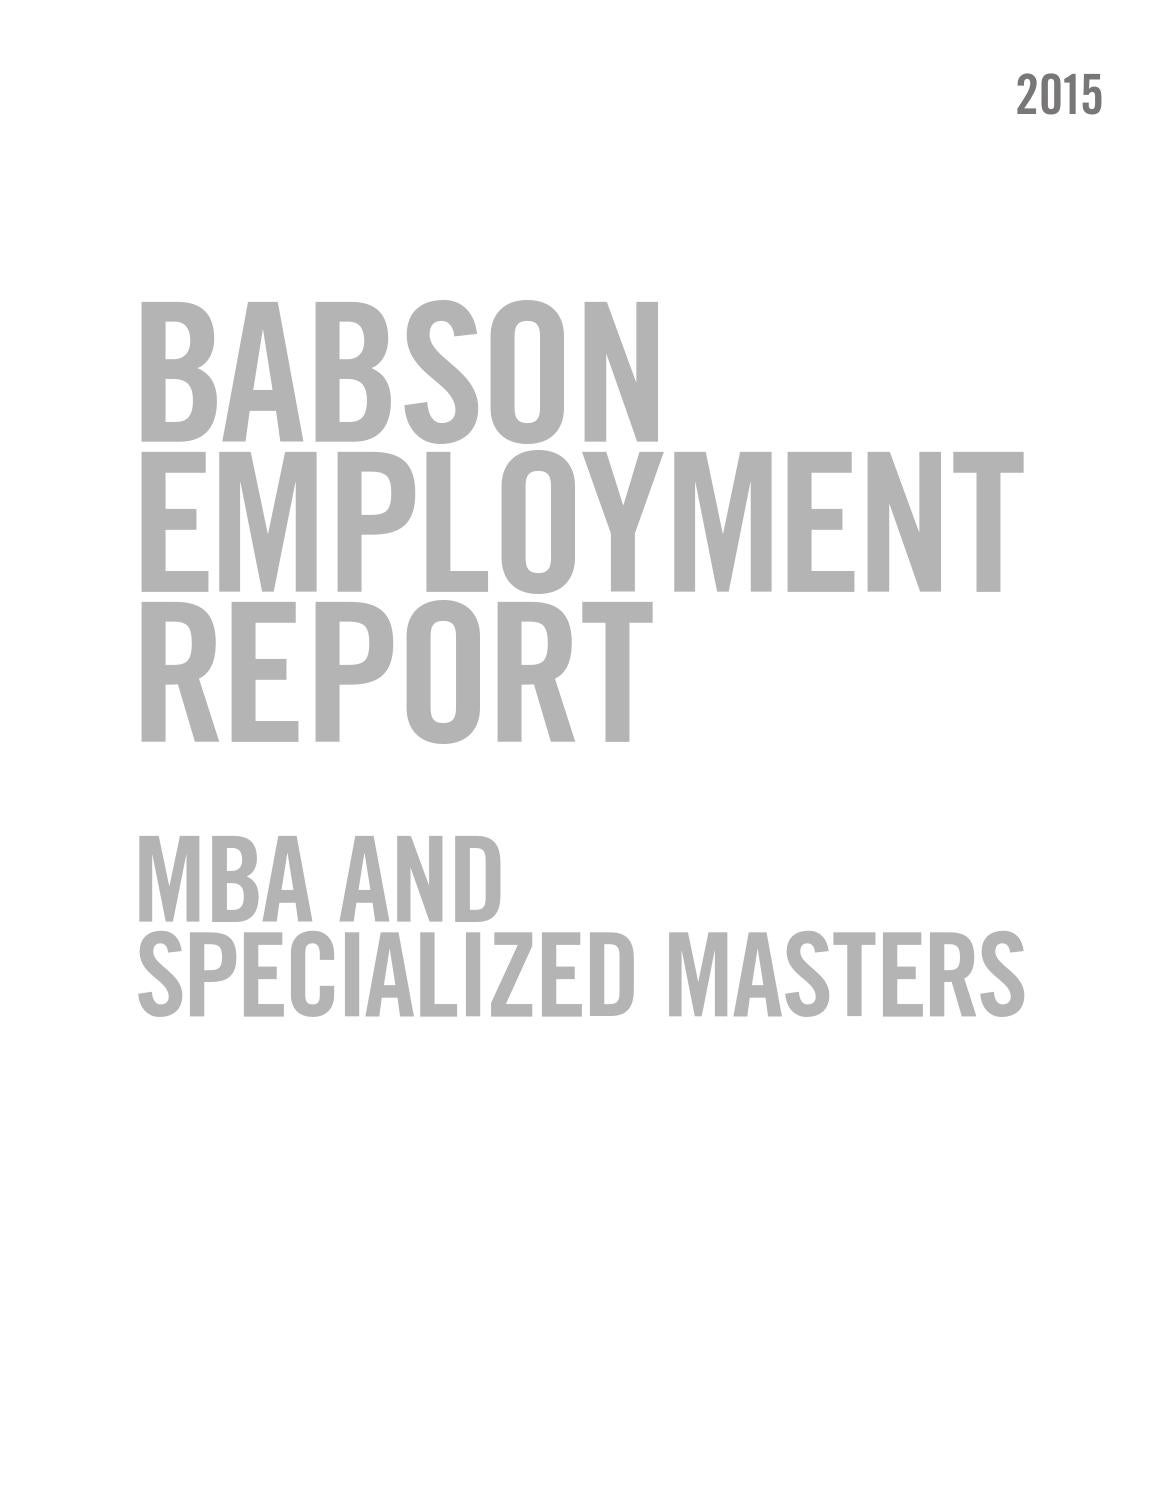 Babson Graduate Employment Report 2015 by Babson College